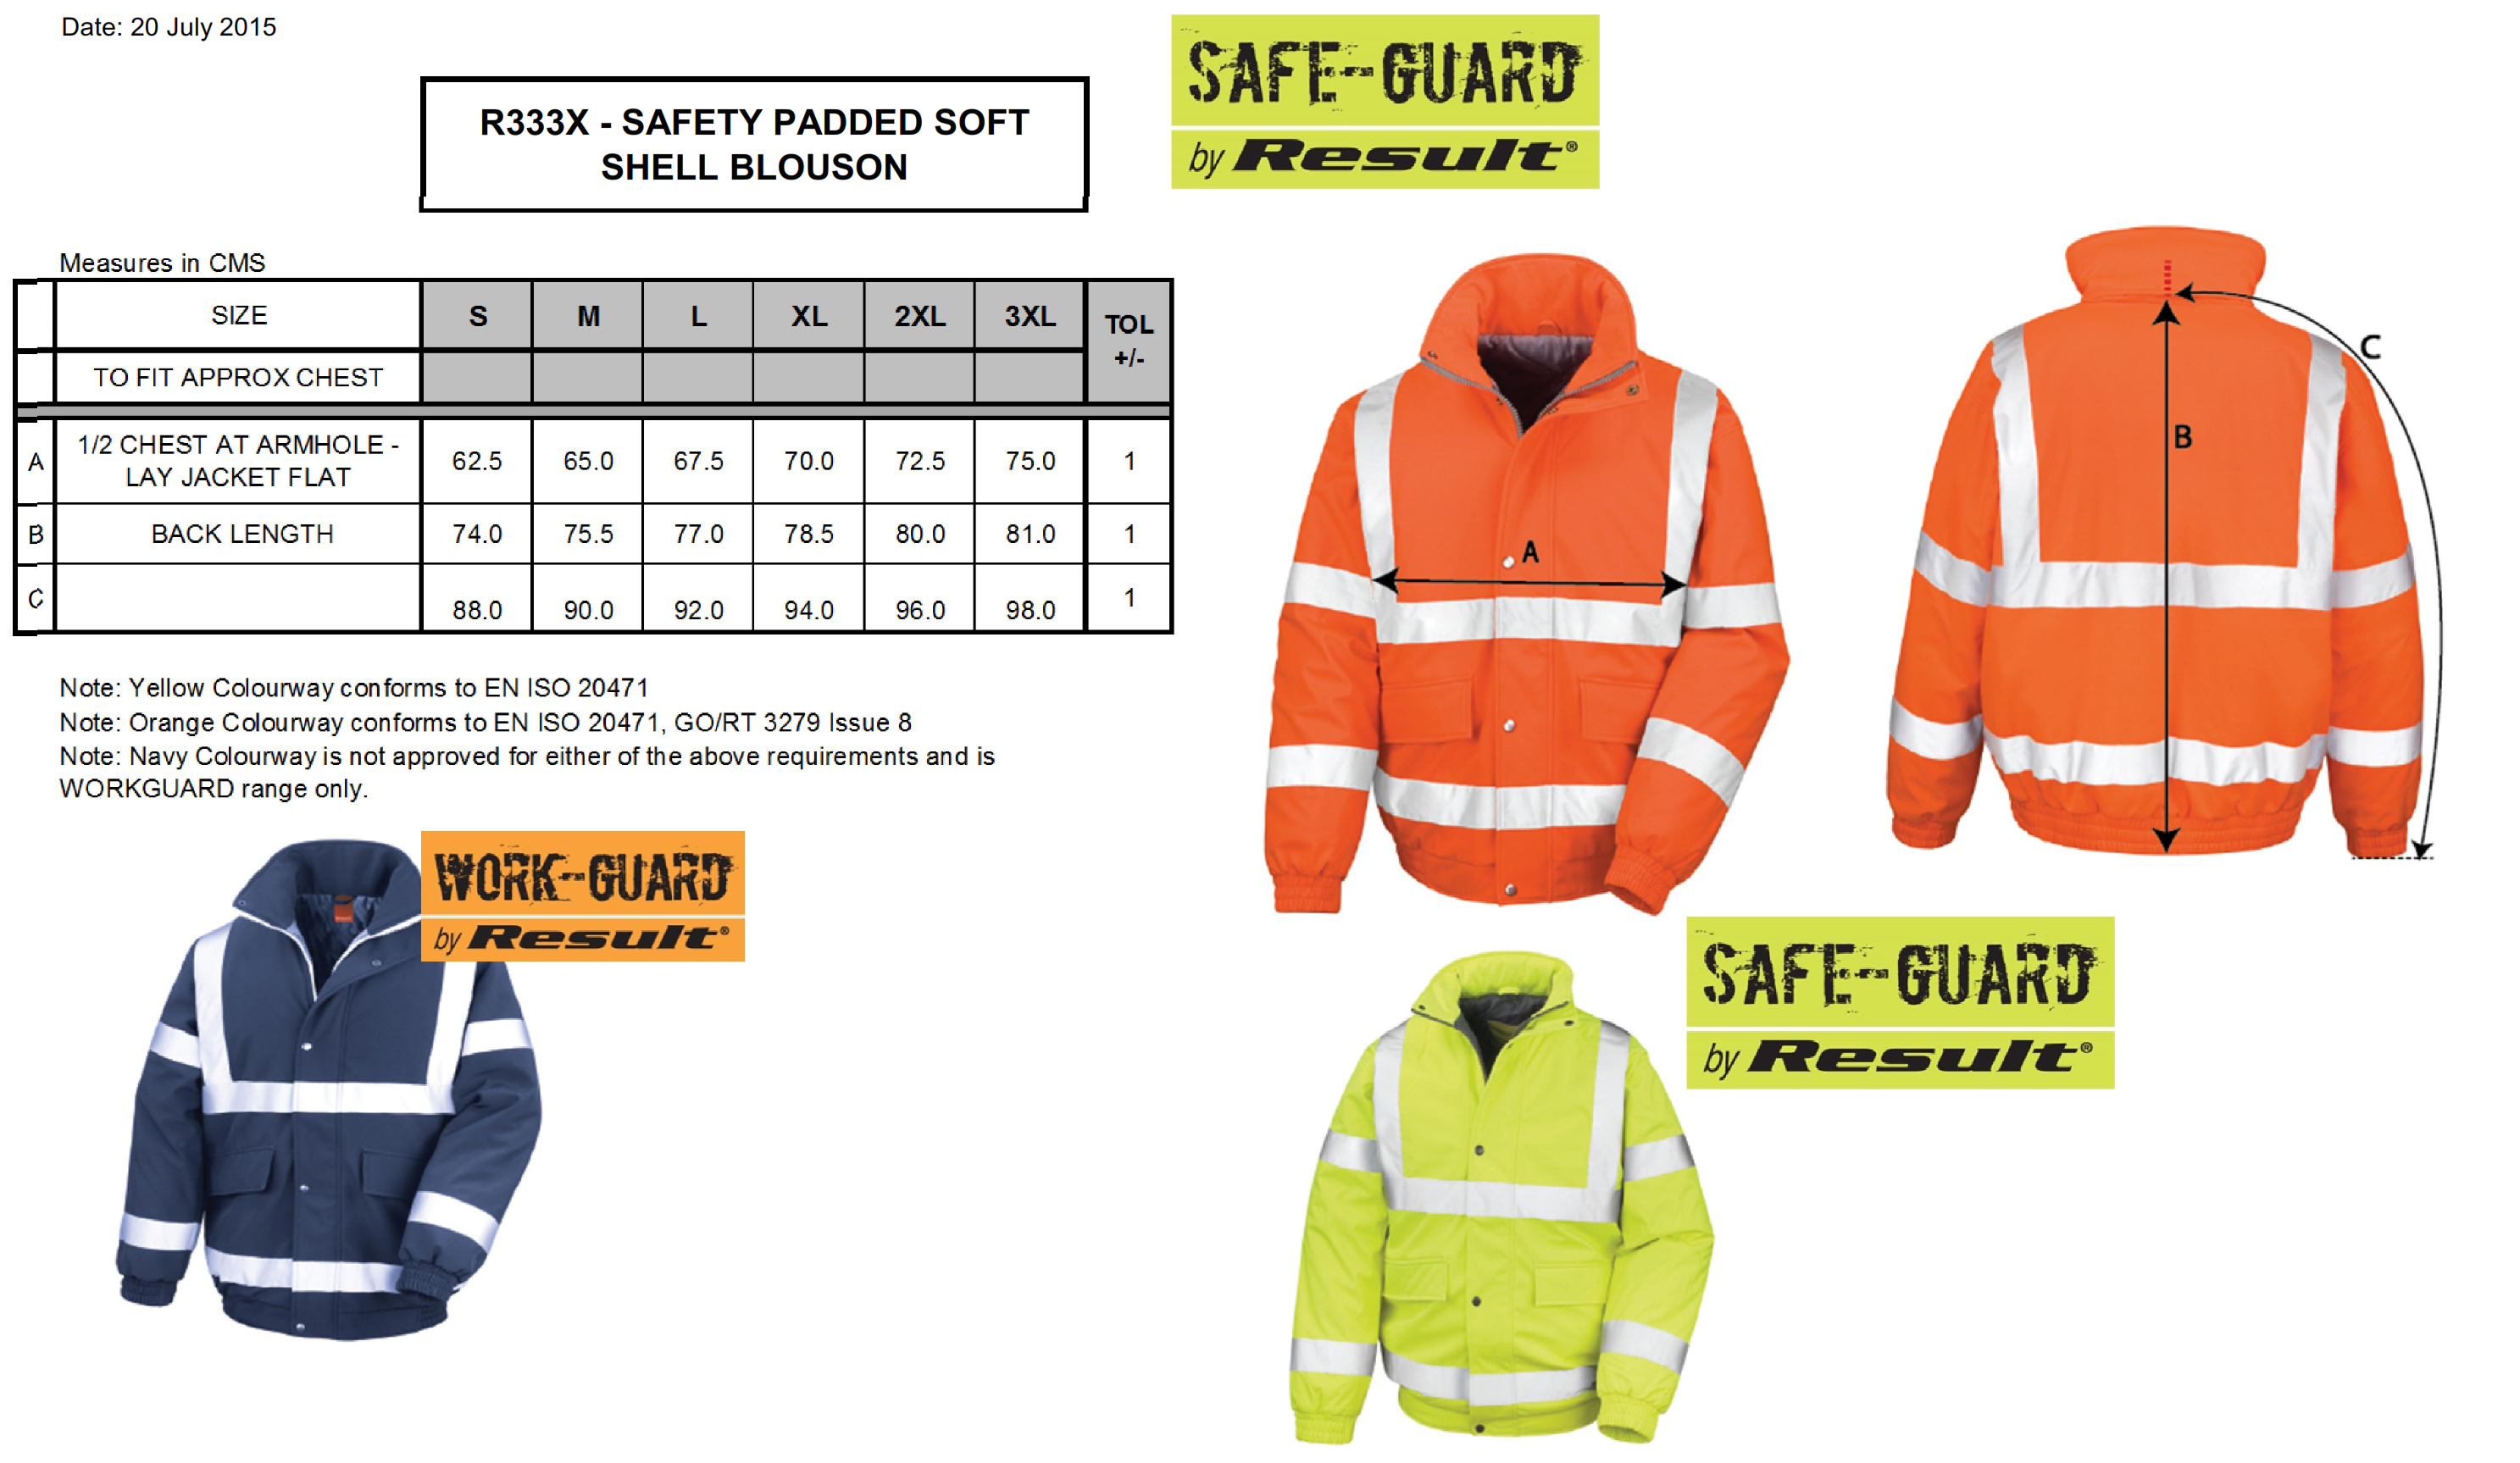 Result: Safety Padded Softshell Blouson R333X